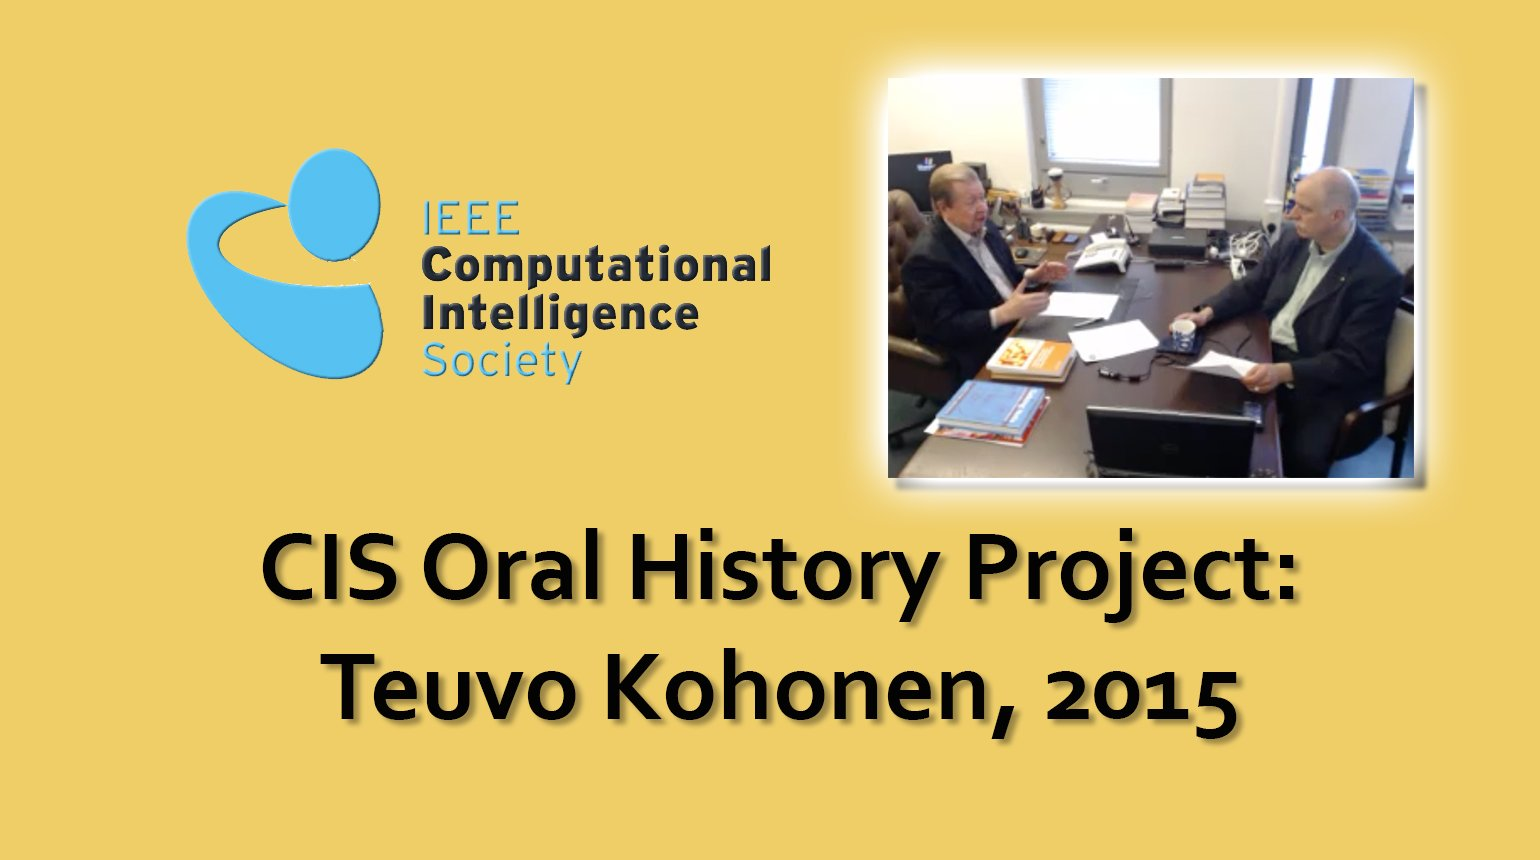 Interview with Teuvo Kohonen, 2015: CIS Oral History Project